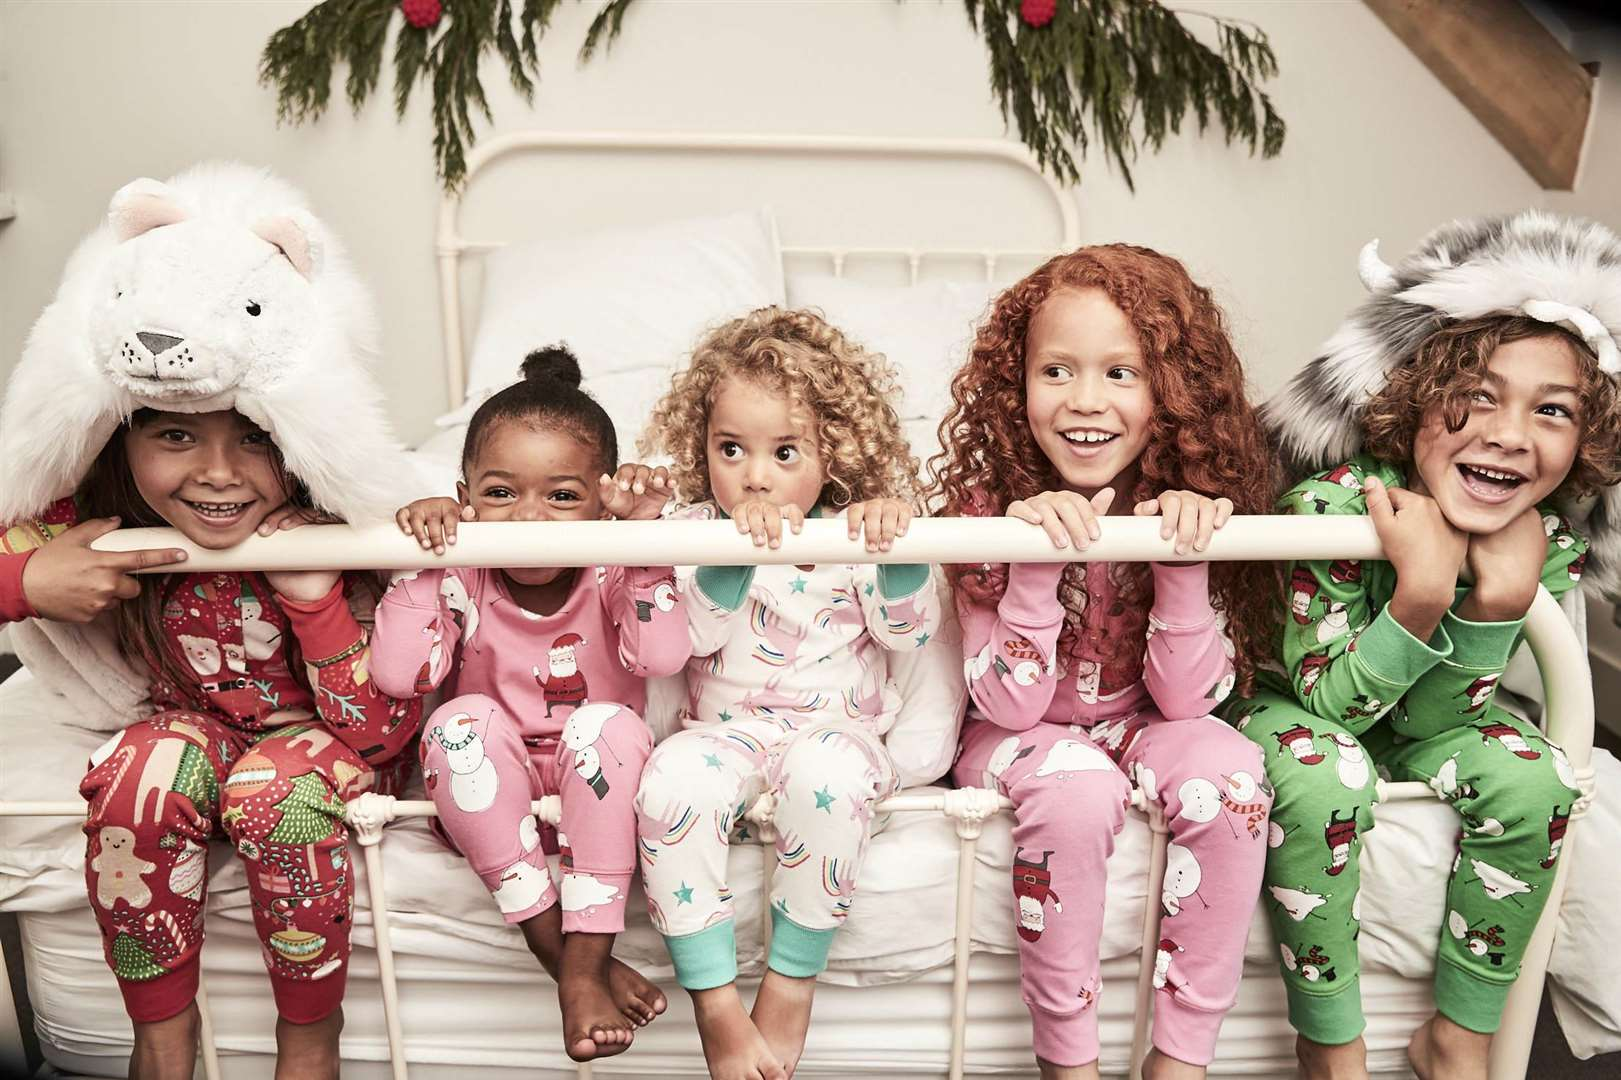 Next has a wide range of Christmas pyjamas from £10